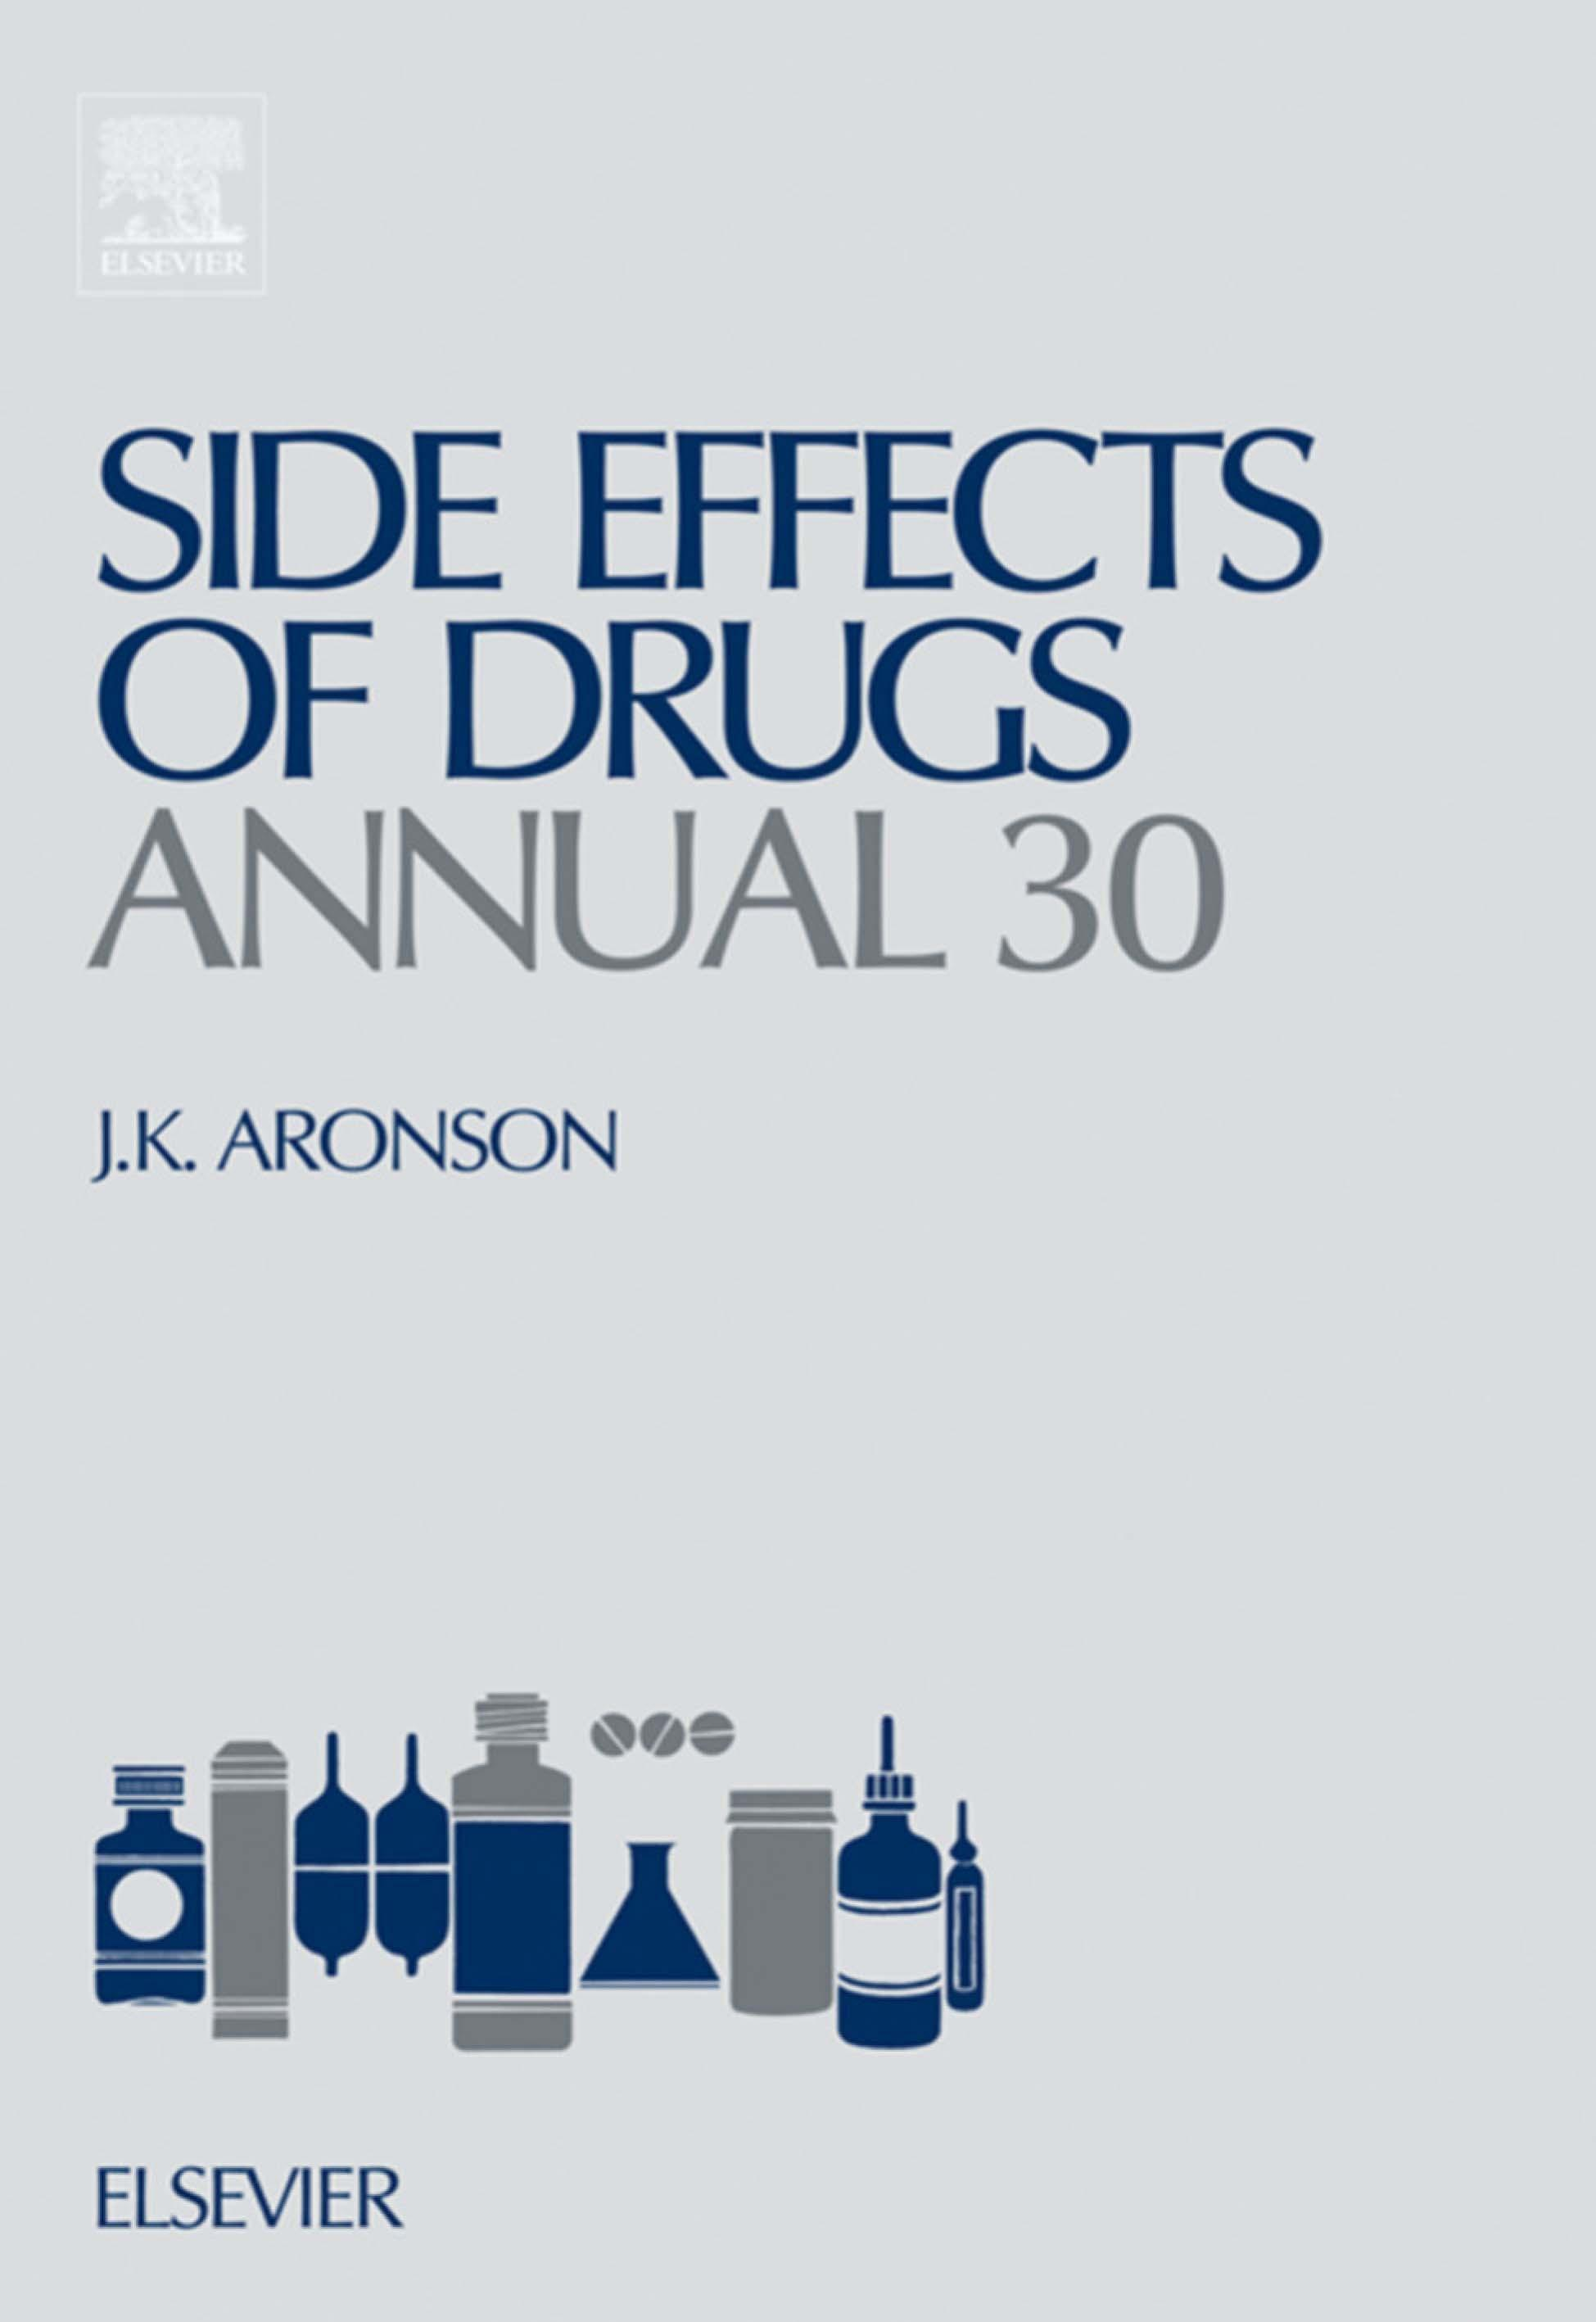 Side Effects of Drugs Annual 30: A worldwide yearly survey of new data and trends in adverse drug reactions EB9780080931517